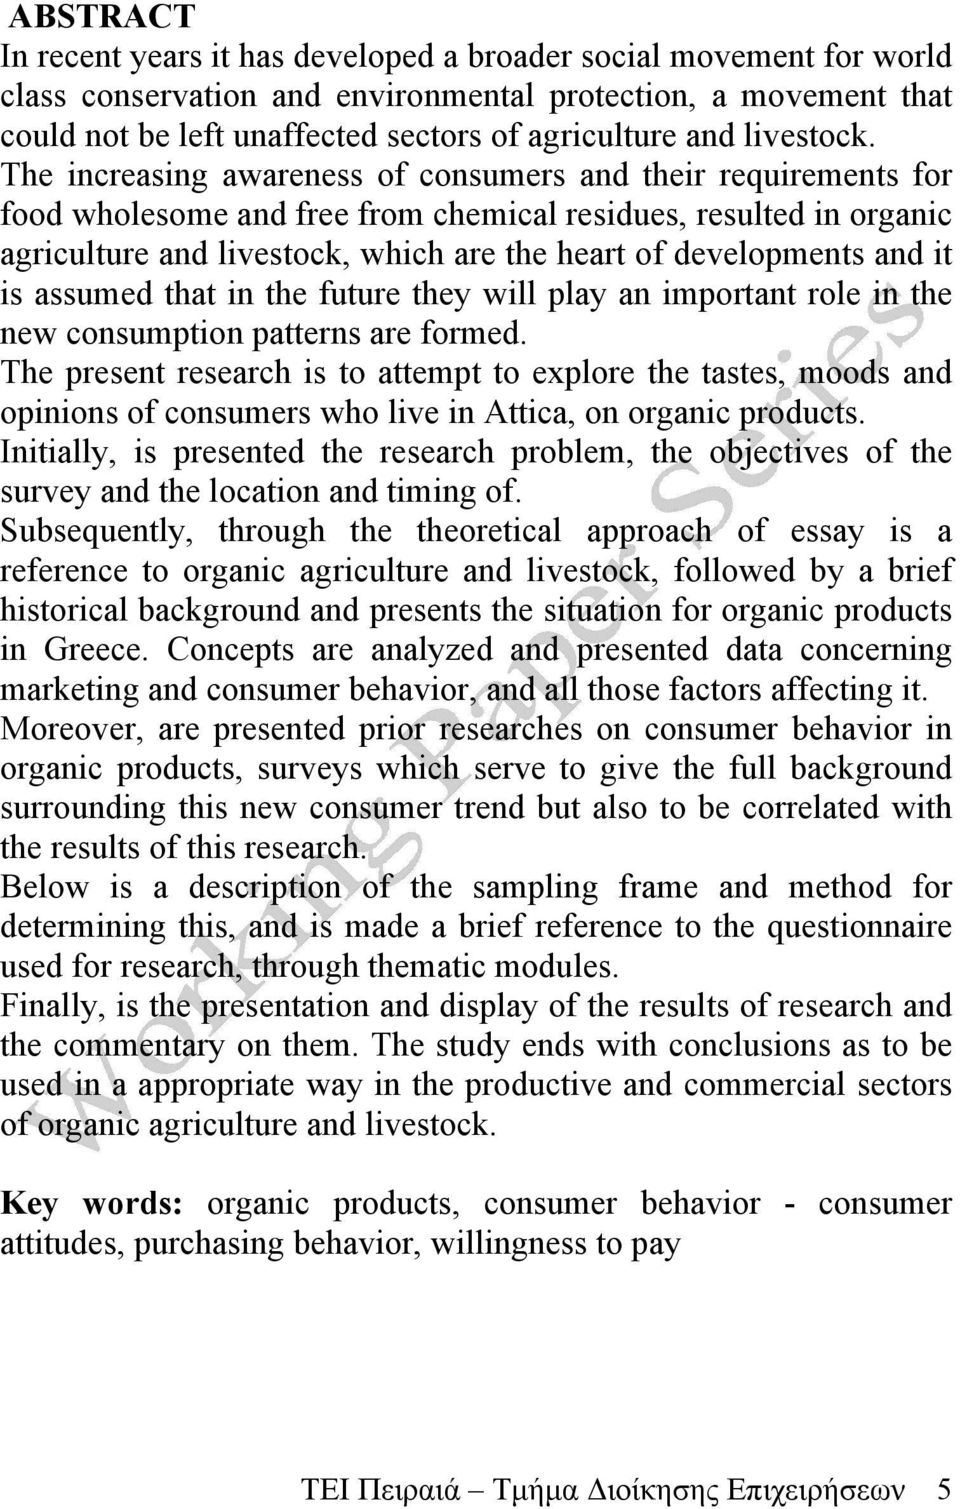 The increasing awareness of consumers and their requirements for food wholesome and free from chemical residues, resulted in organic agriculture and livestock, which are the heart of developments and